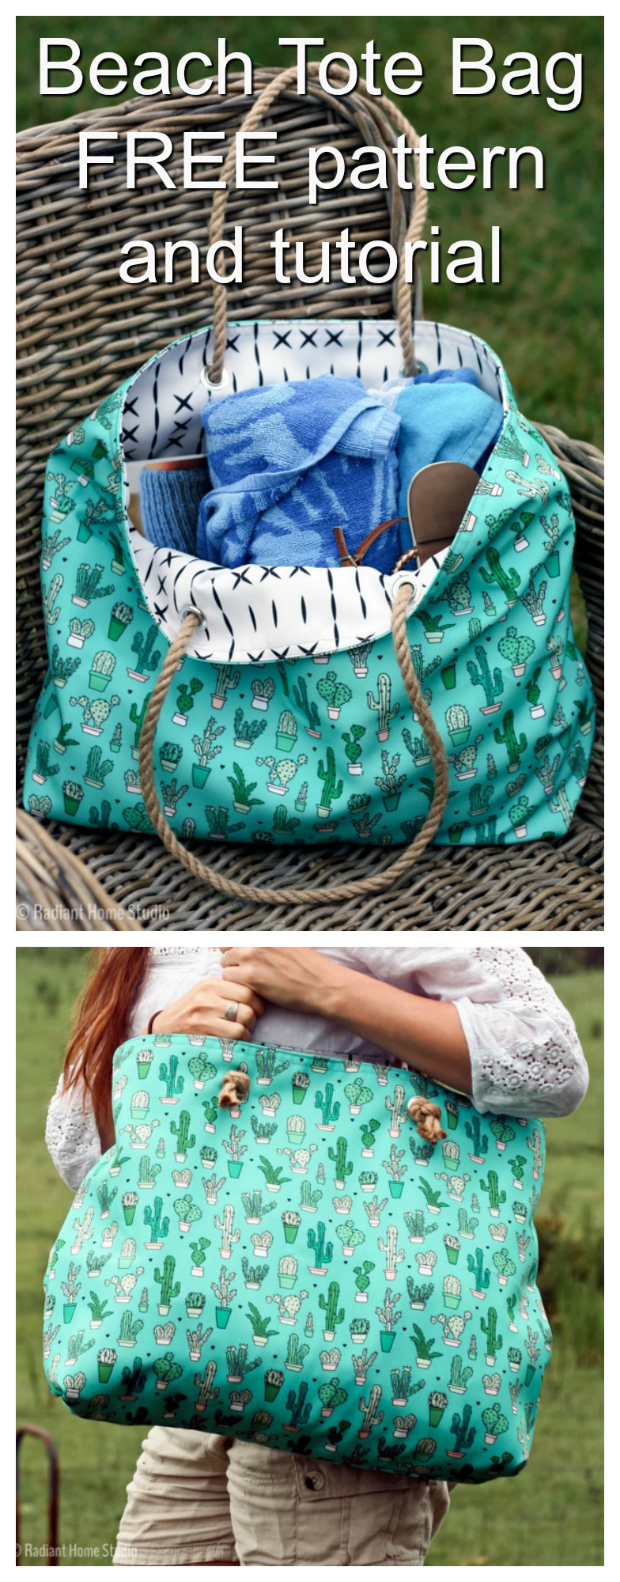 Having a day at the beach is always a great idea. Well, now you can make yourself this wonderful Beach Tote Bag with this FREE pattern and tutorial. The bag is a simple tote bag, with one full-width pocket that is divided into 3 sections.If you want more pockets, just repeat the pocket directions for the other side of the bag. The fun rope handles are simply threaded through grommets and knotted. Detailed directions for attaching the grommets have been included but if you want a simple alternative you can use buttonholes instead.